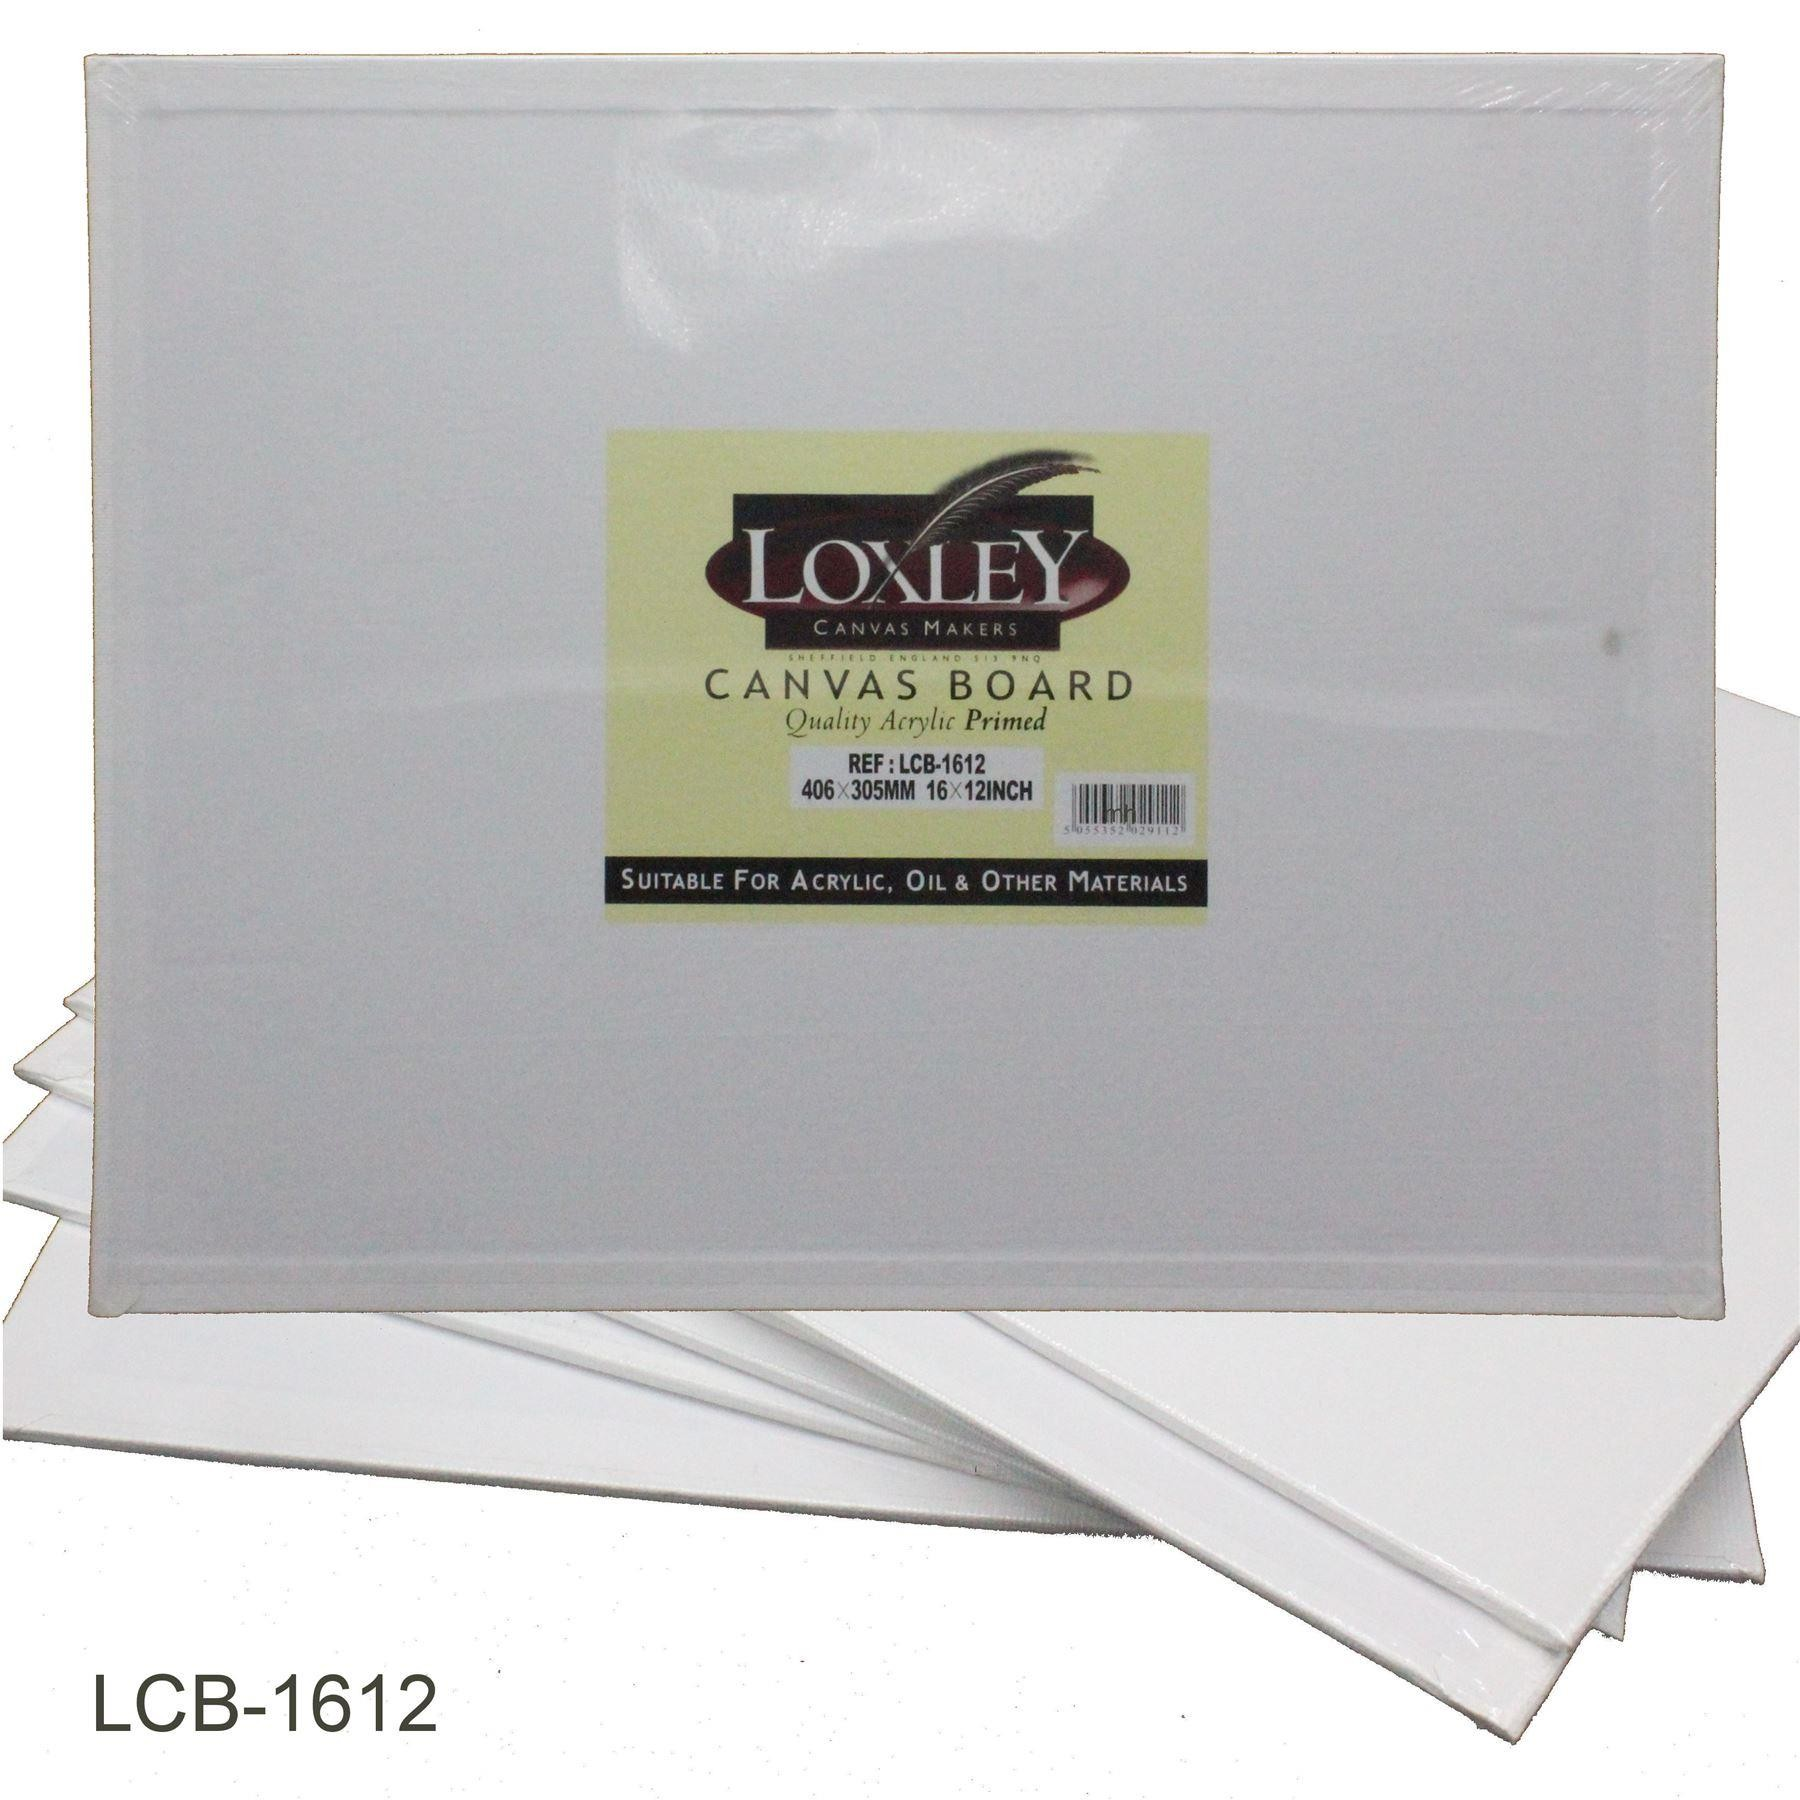 Quality double primed acrylic canvas board from Loxley - 16 x 12""